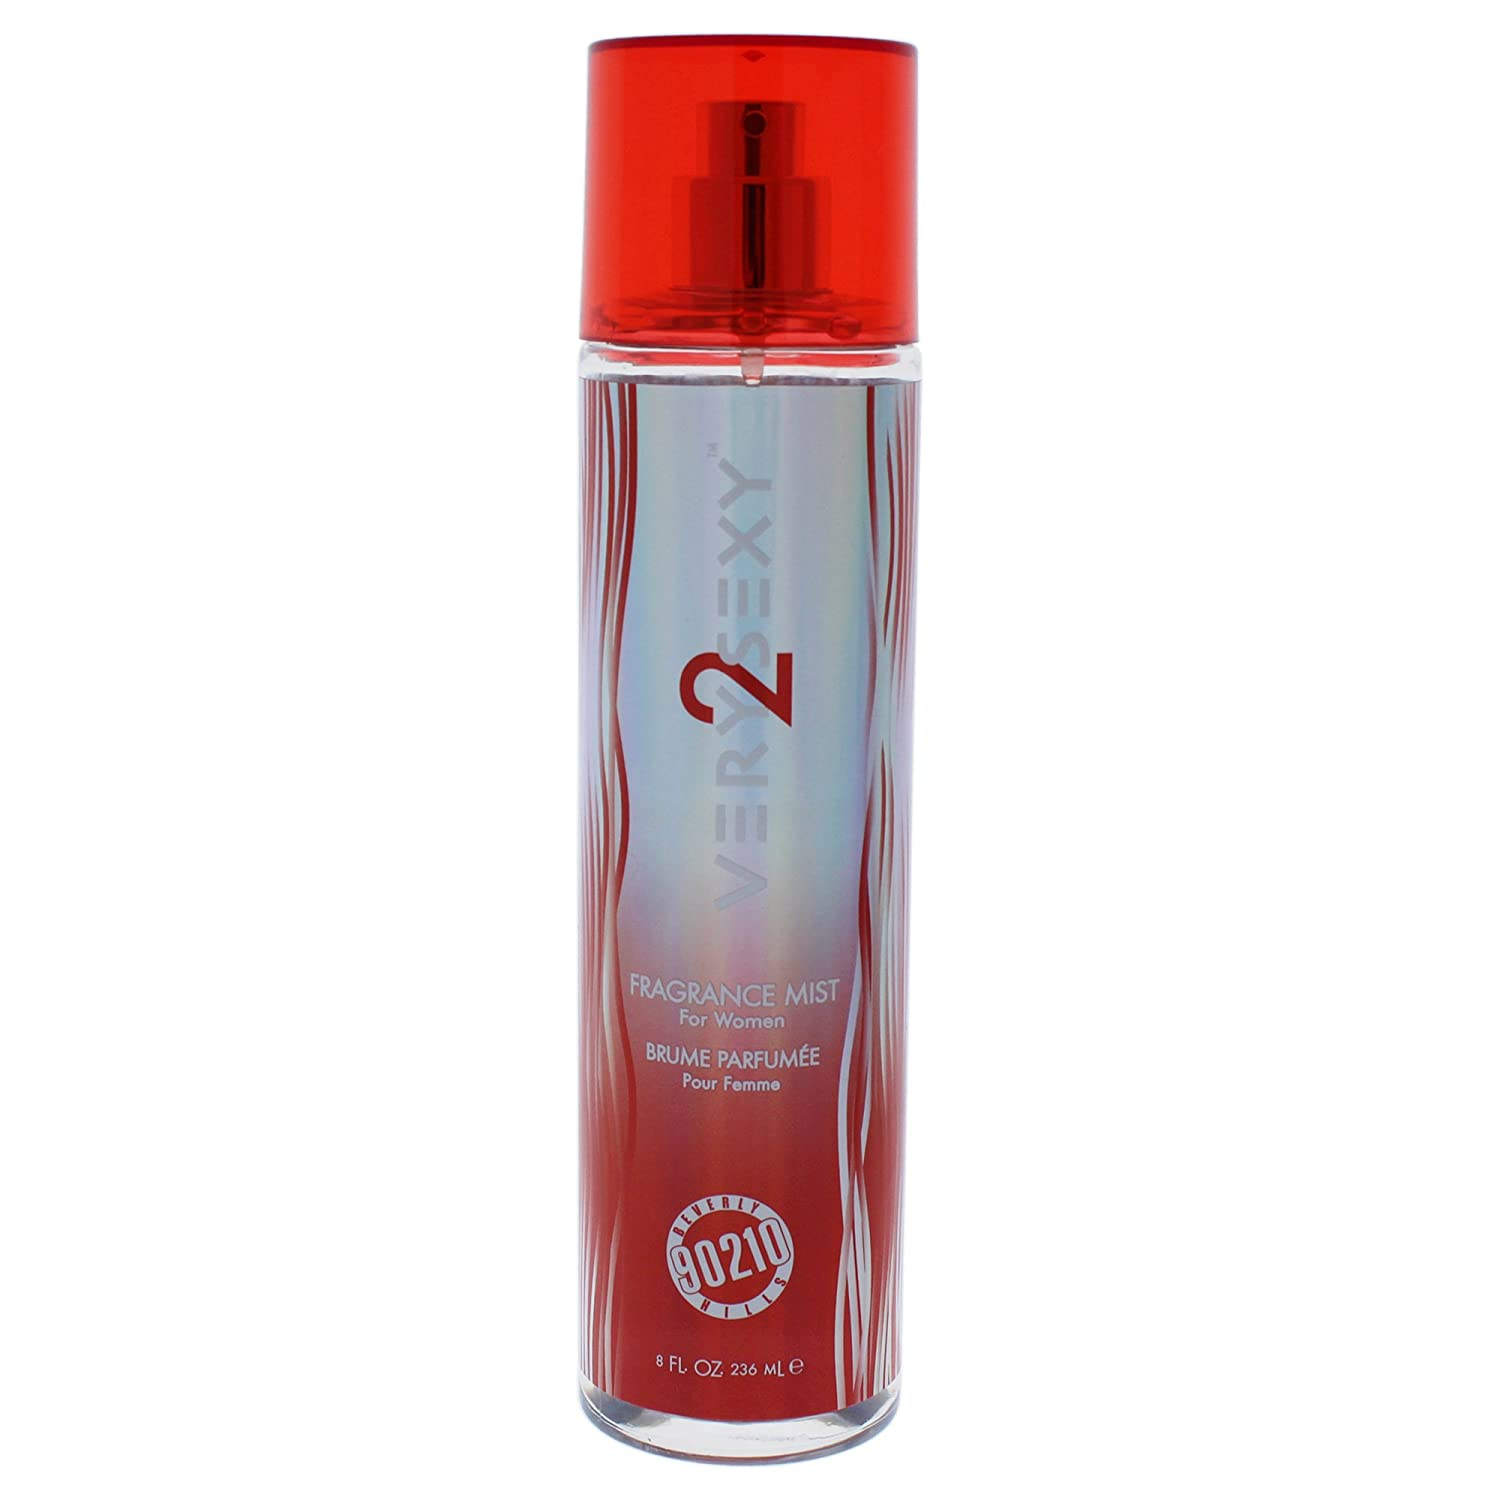 Beverly Hills 90210 Very 2 Sexy Fluid Mist 8 Fort service Worth Mall Ounce Fragrance